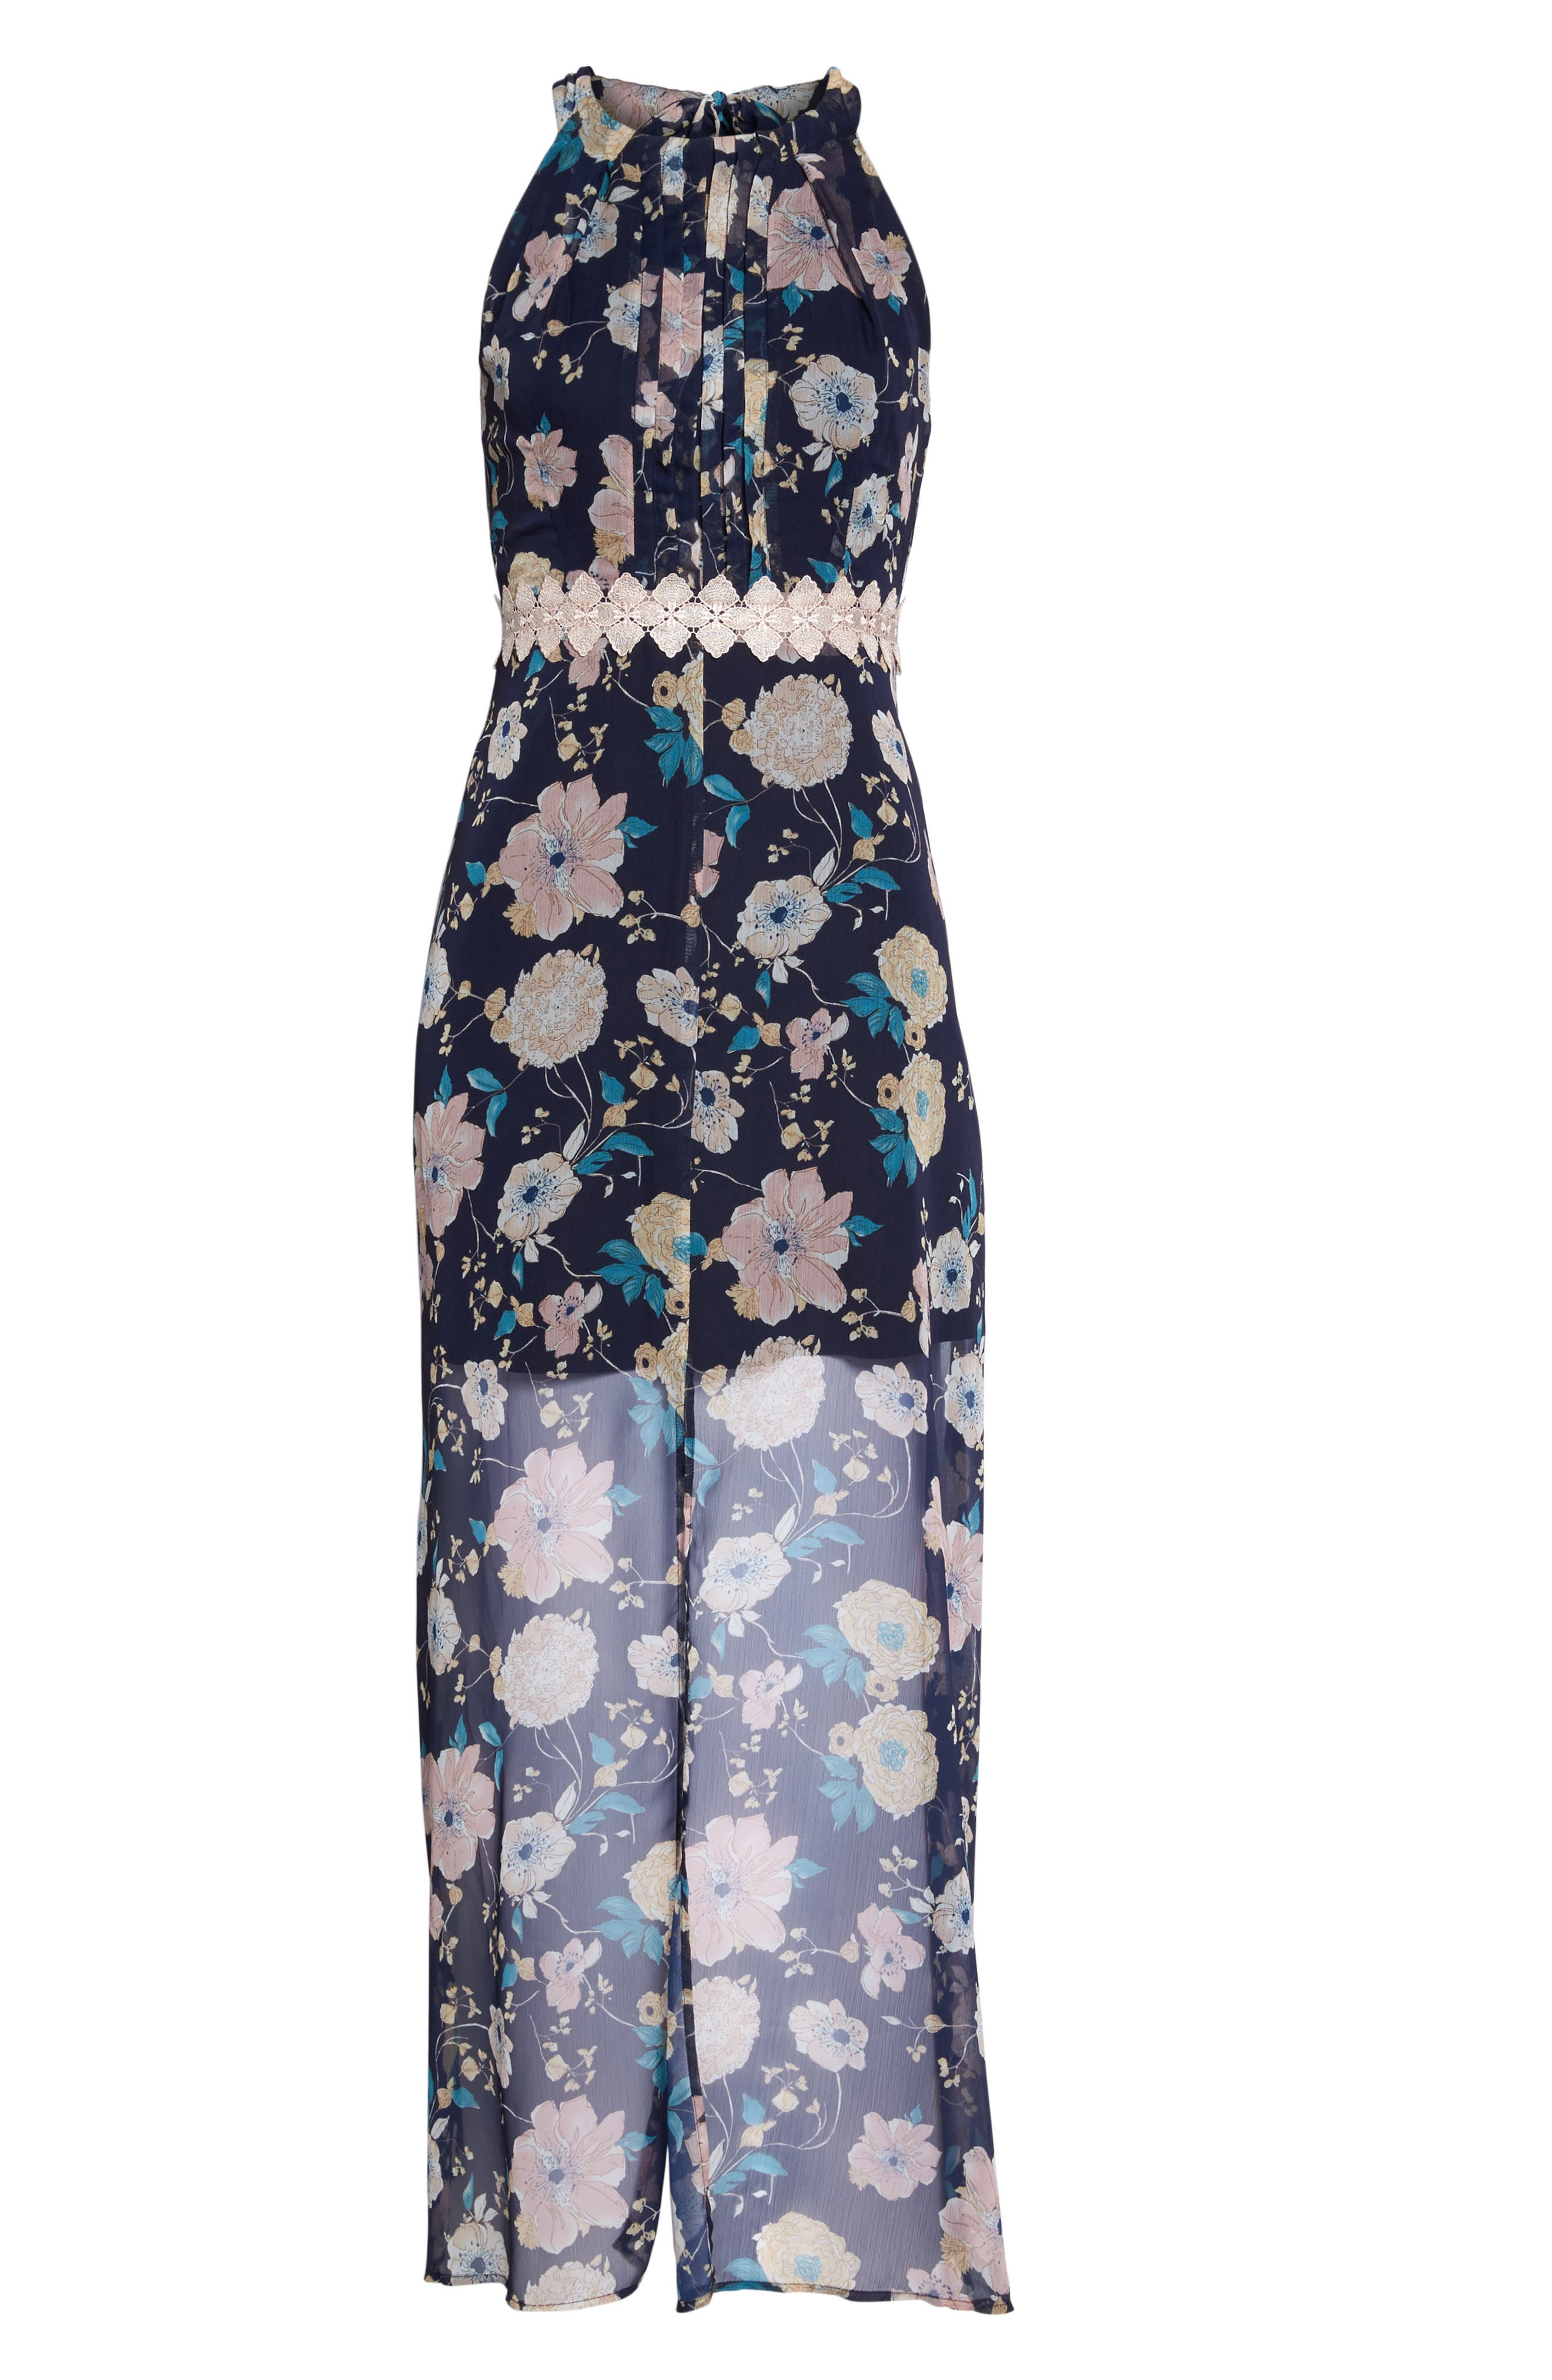 Brylee Floral Print Maxi Dress,                             Alternate thumbnail 6, color,                             Brylee Navy Multi